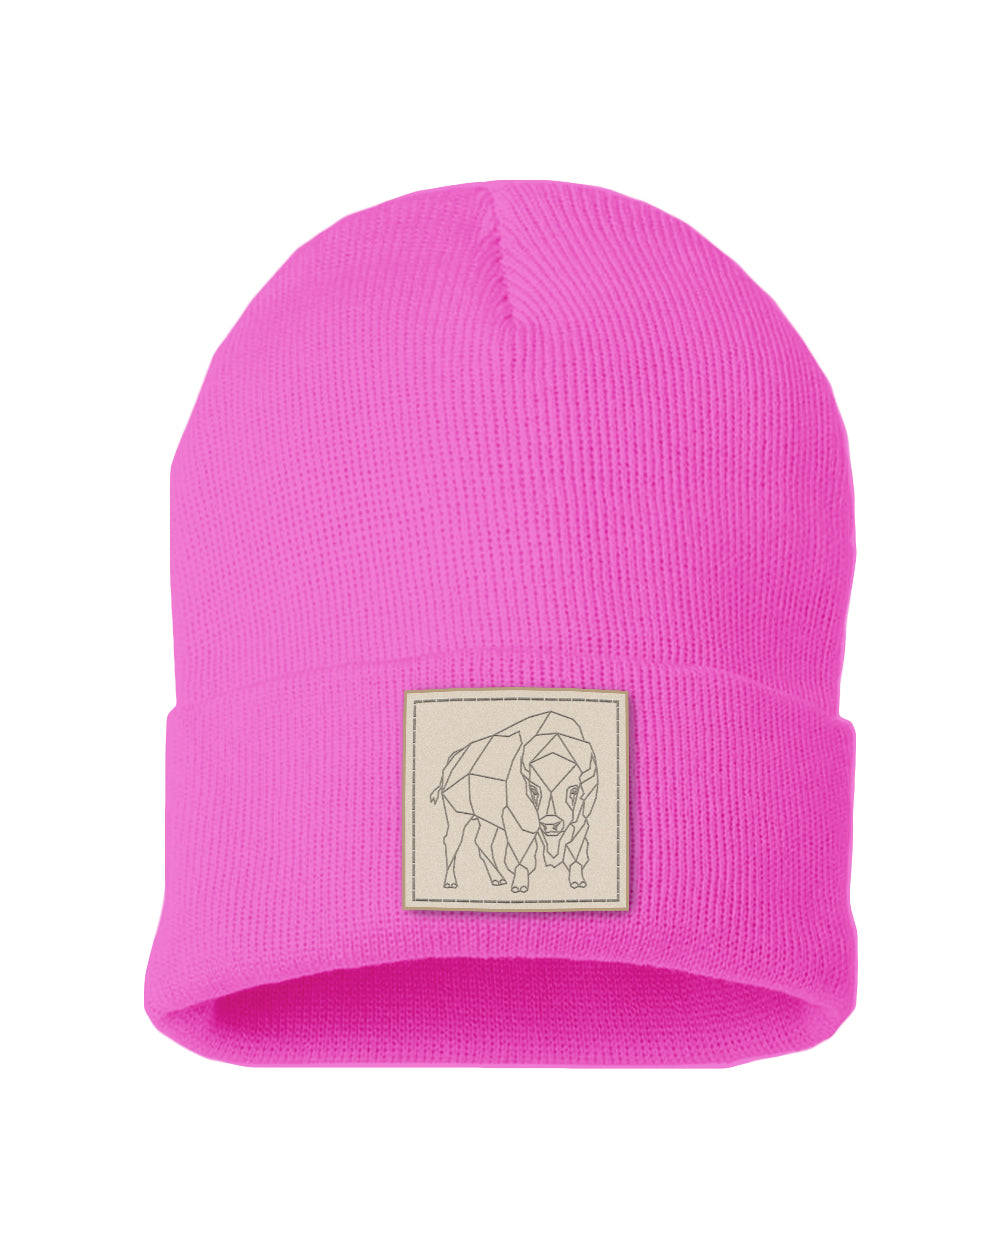 Bison Patch Solid Knit Beanie - Neon Pink